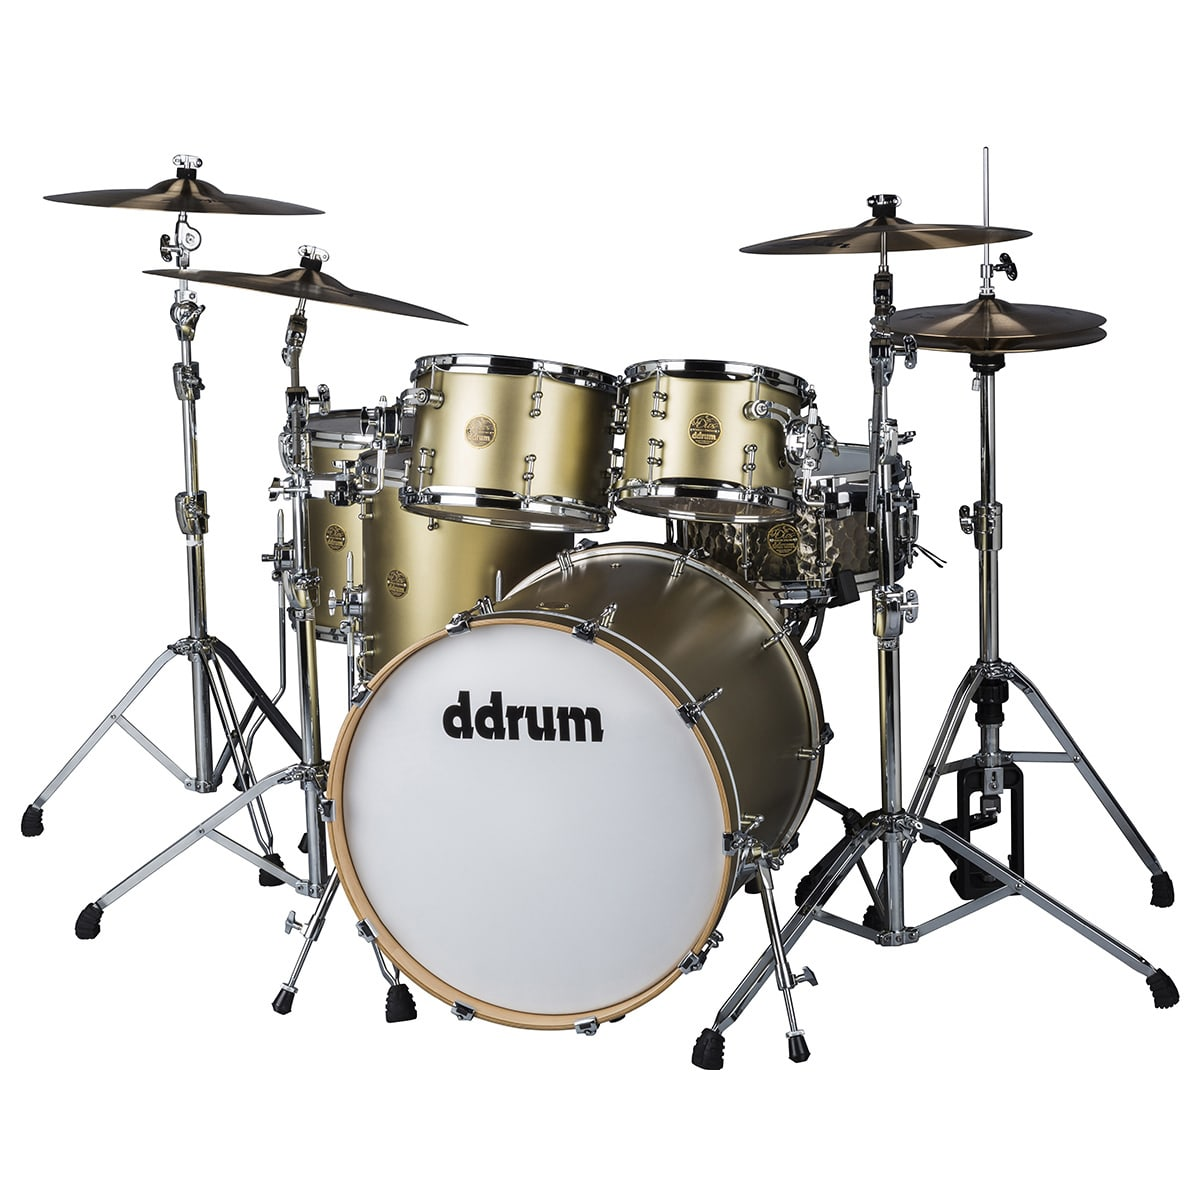 ddrum product Image